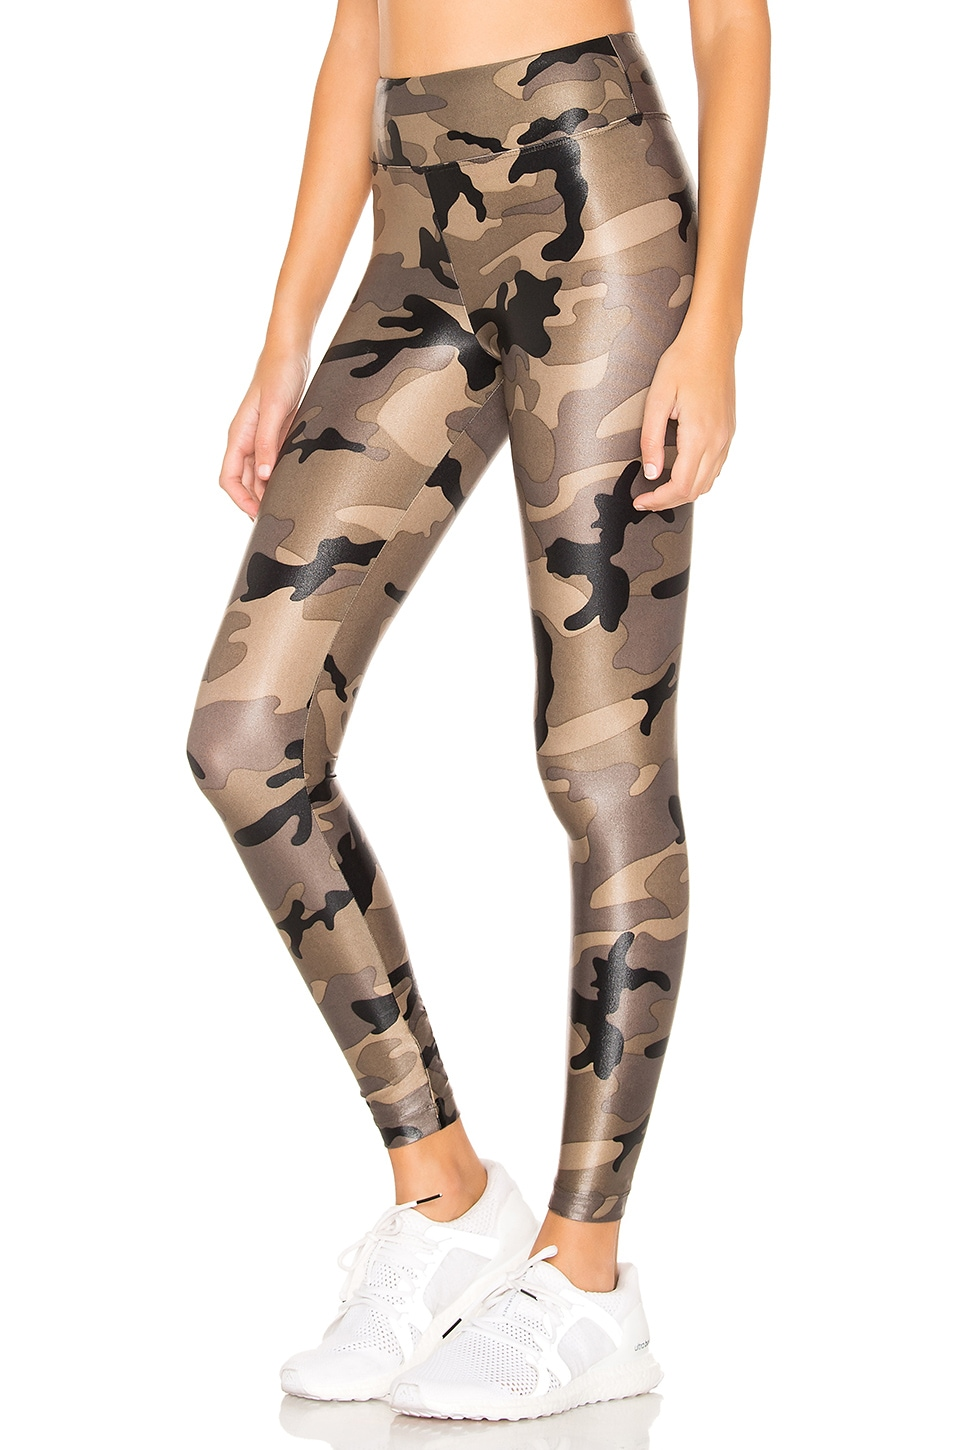 KORAL Lustrous High Rise Legging in Camo